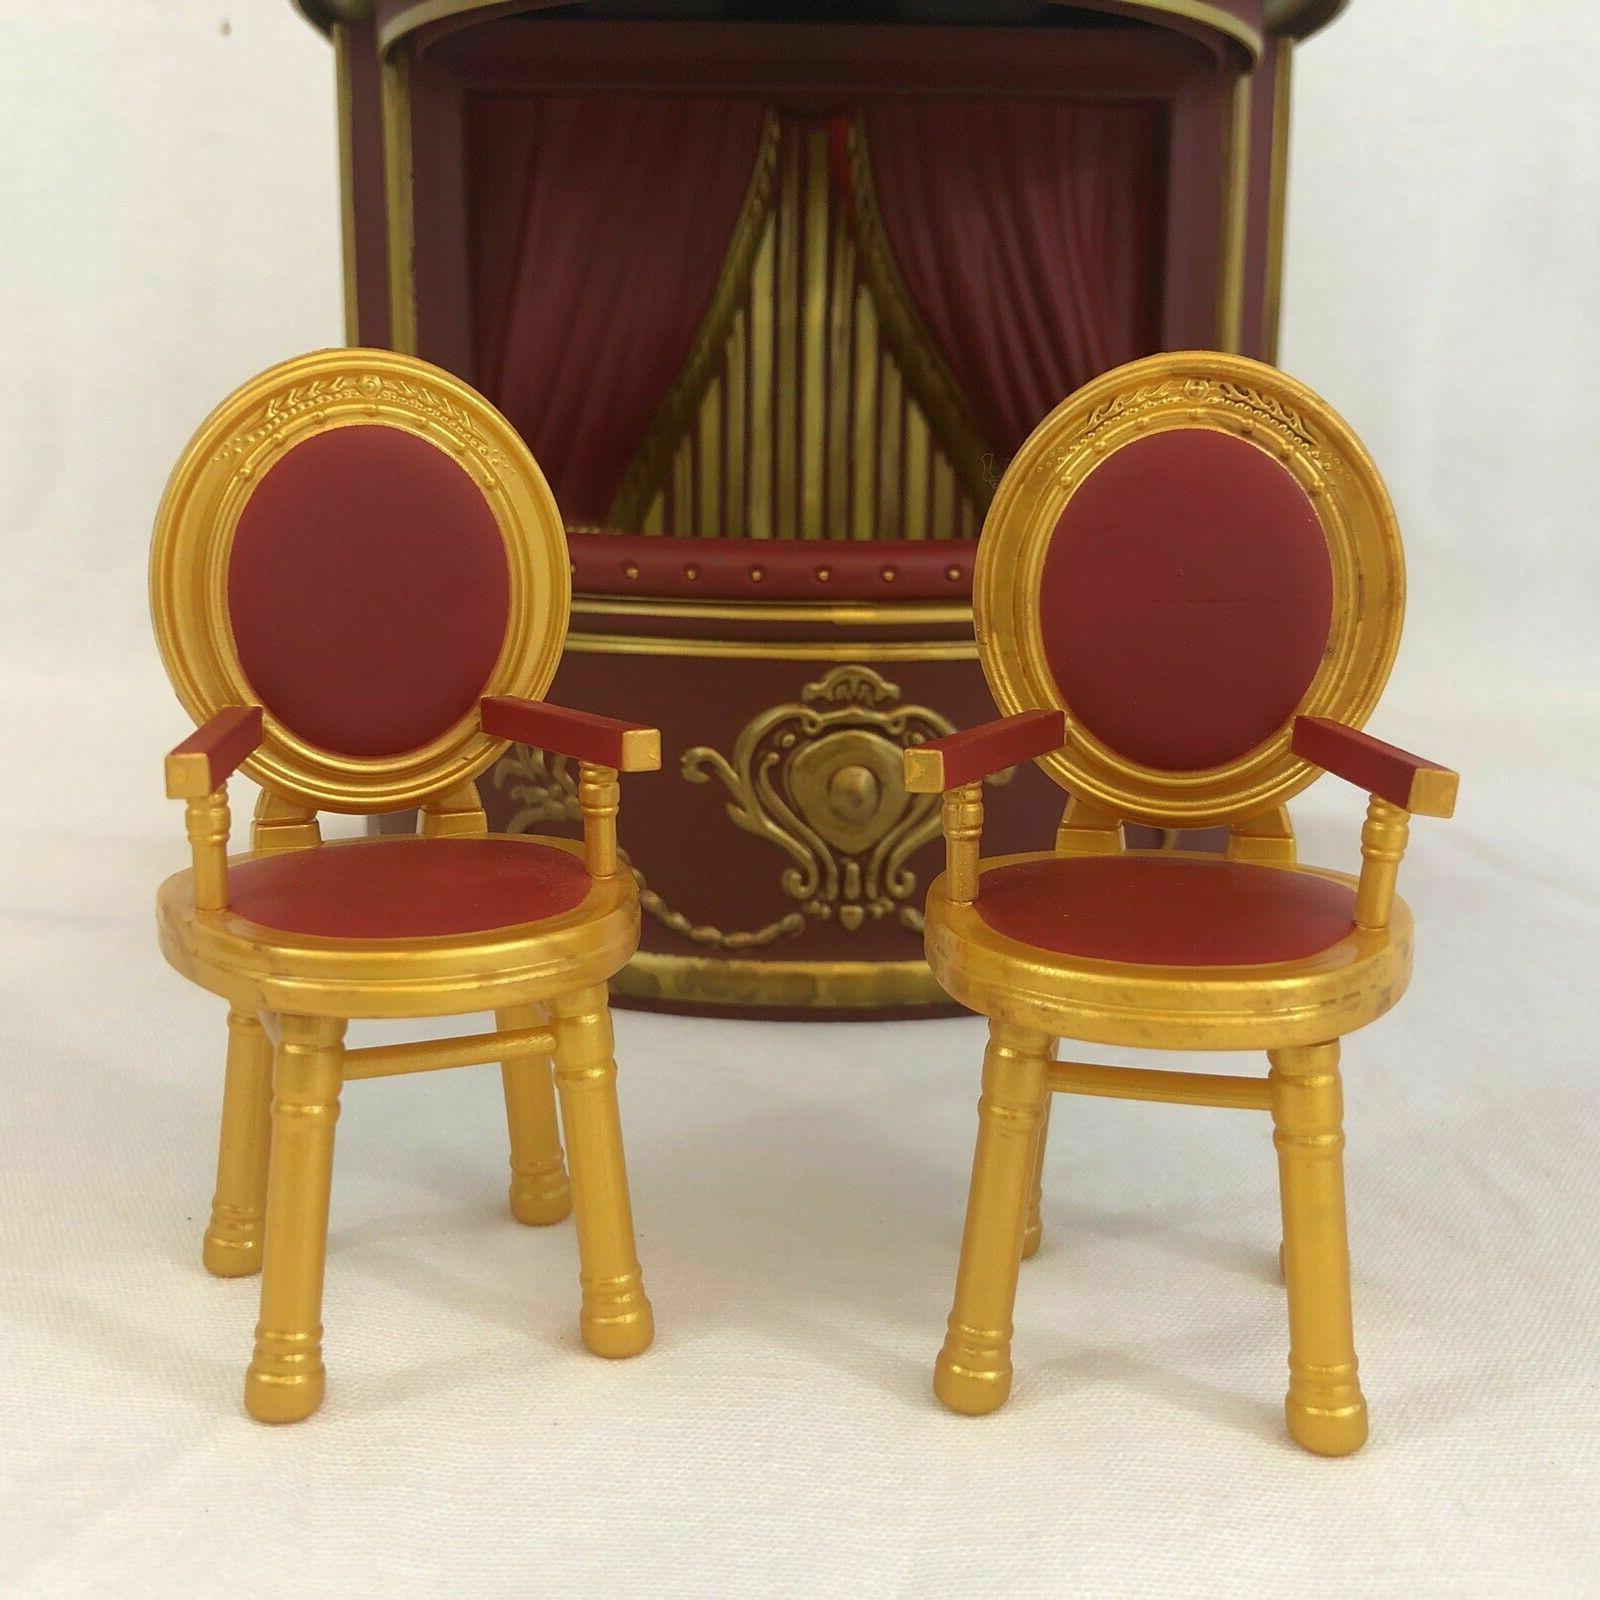 Diamond Toys Muppets STATLER and WALDORF 2 Pack